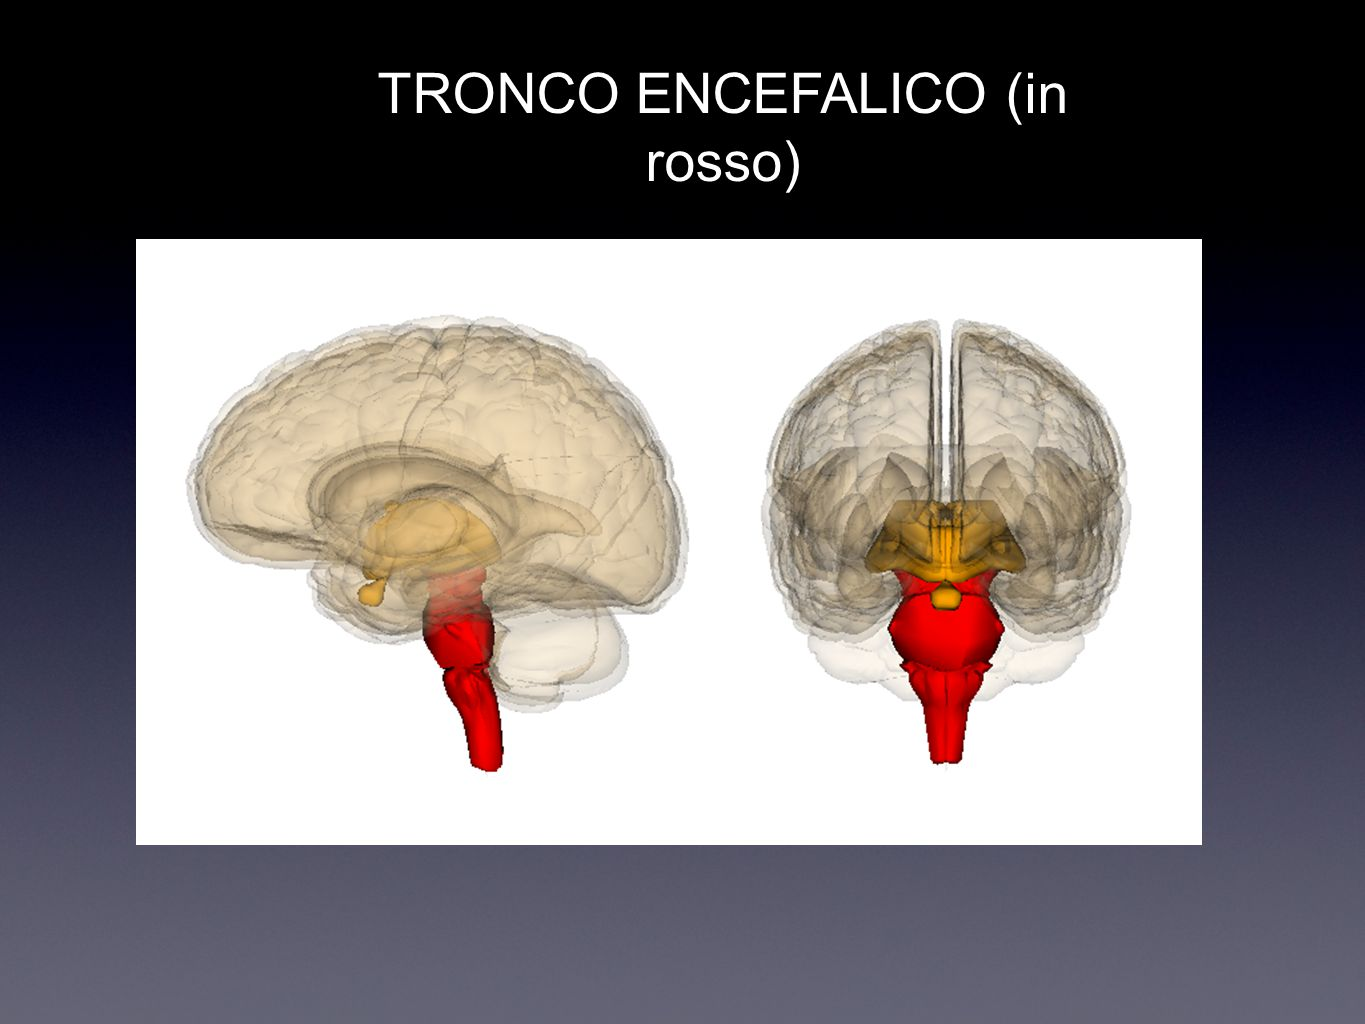 TRONCO ENCEFALICO (in rosso)